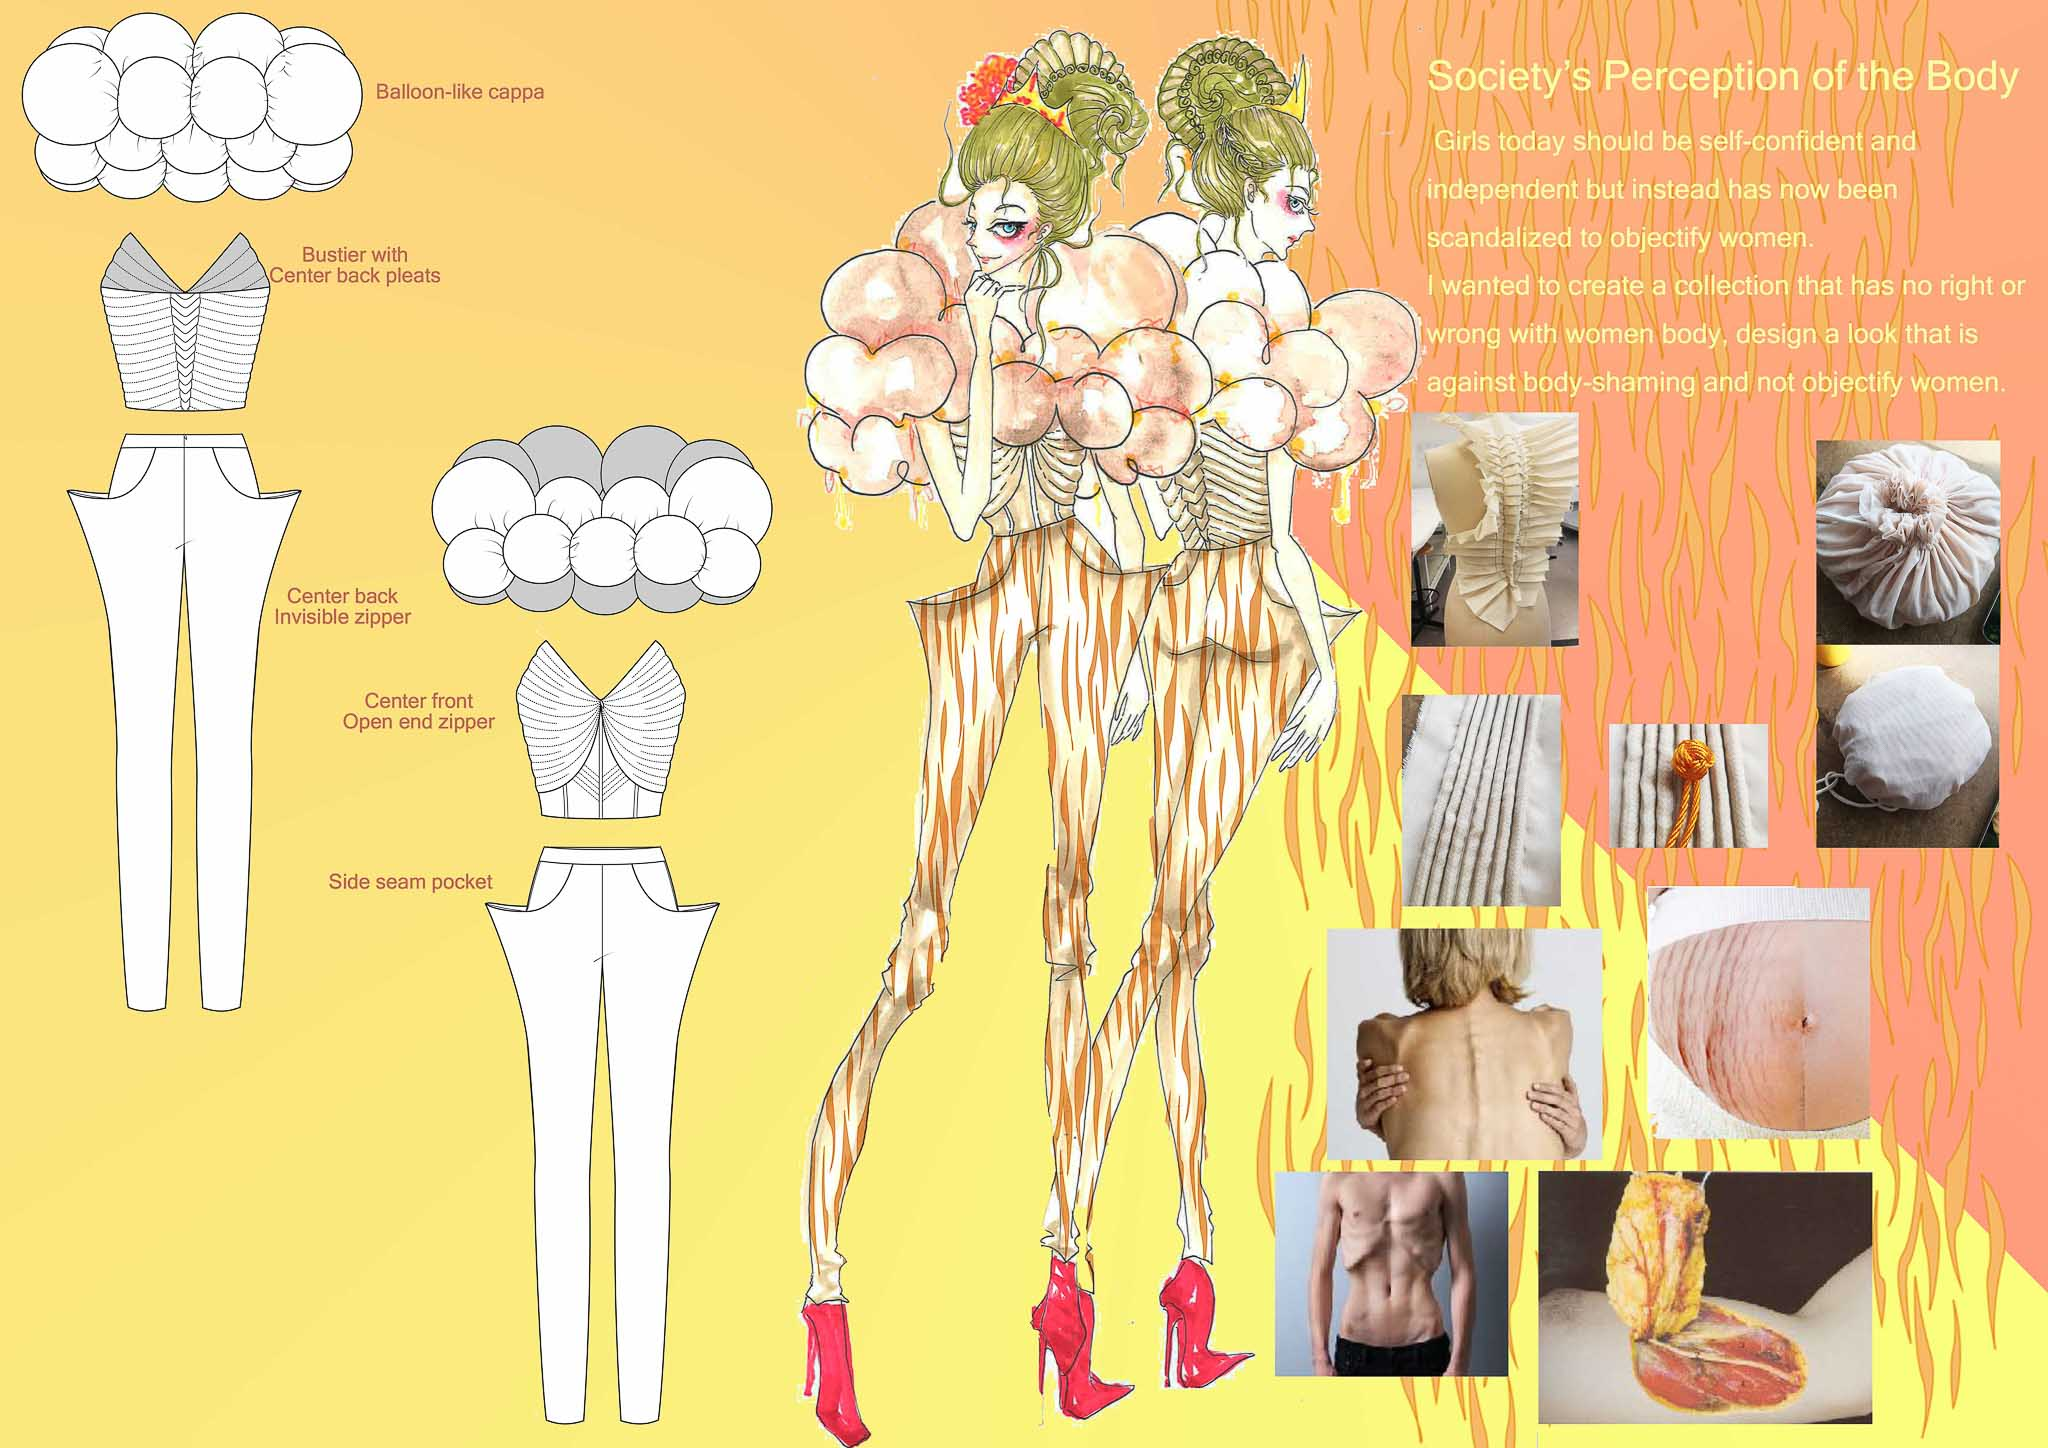 Body Perception: Xueer Zhao, China, Student, Raffles Design Institute Singapore